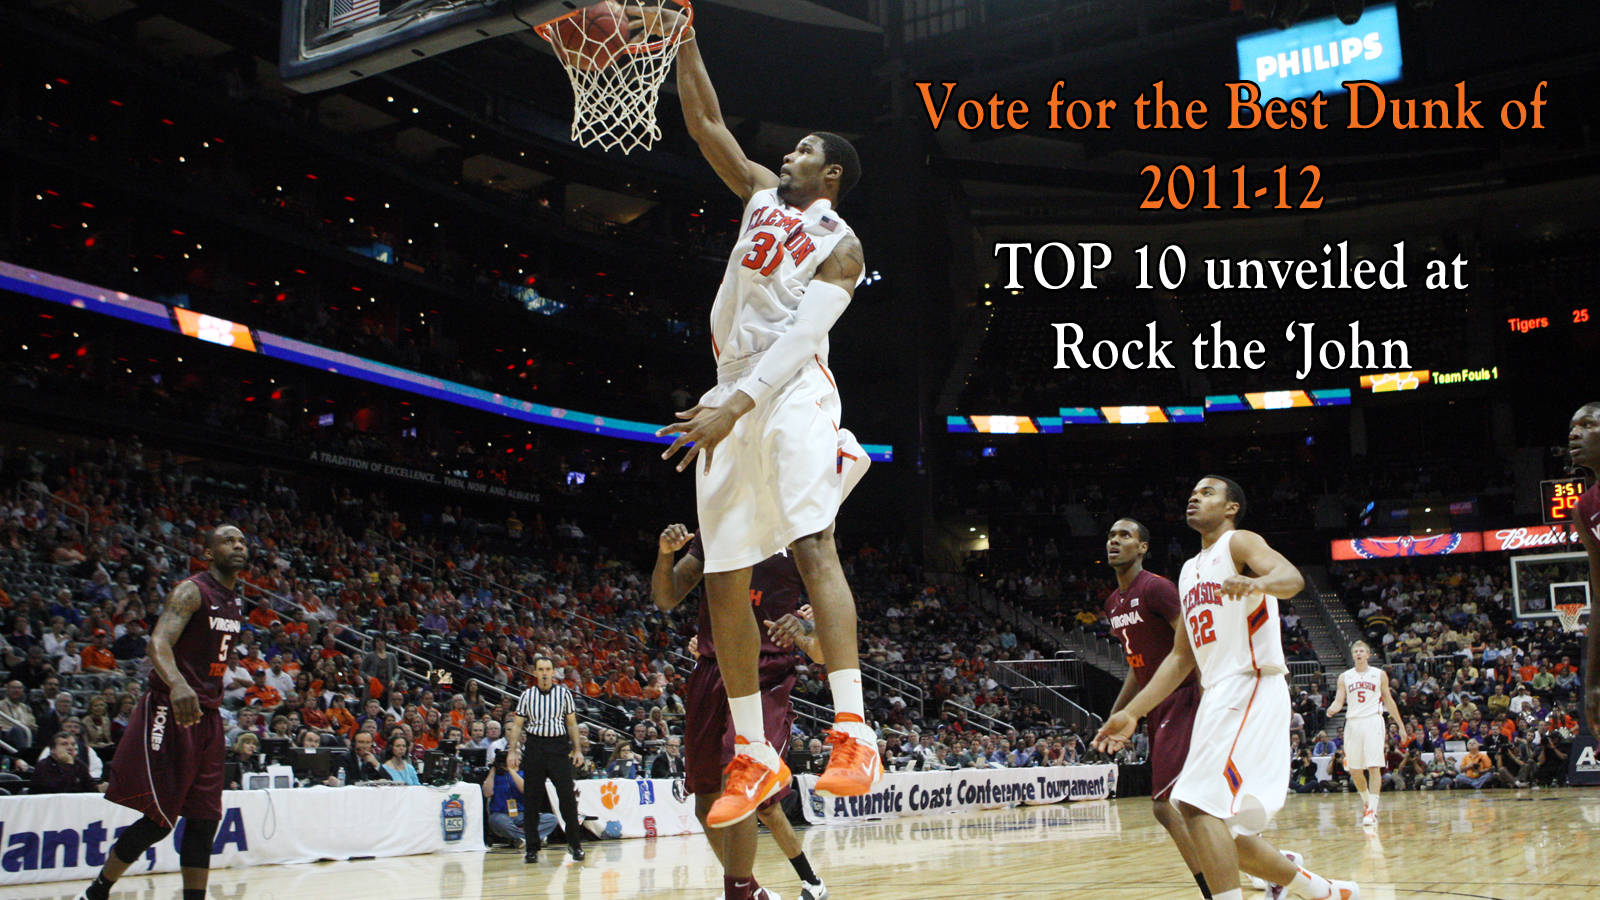 Rock the 'John: Vote for Top 10 Dunks from 2011-12